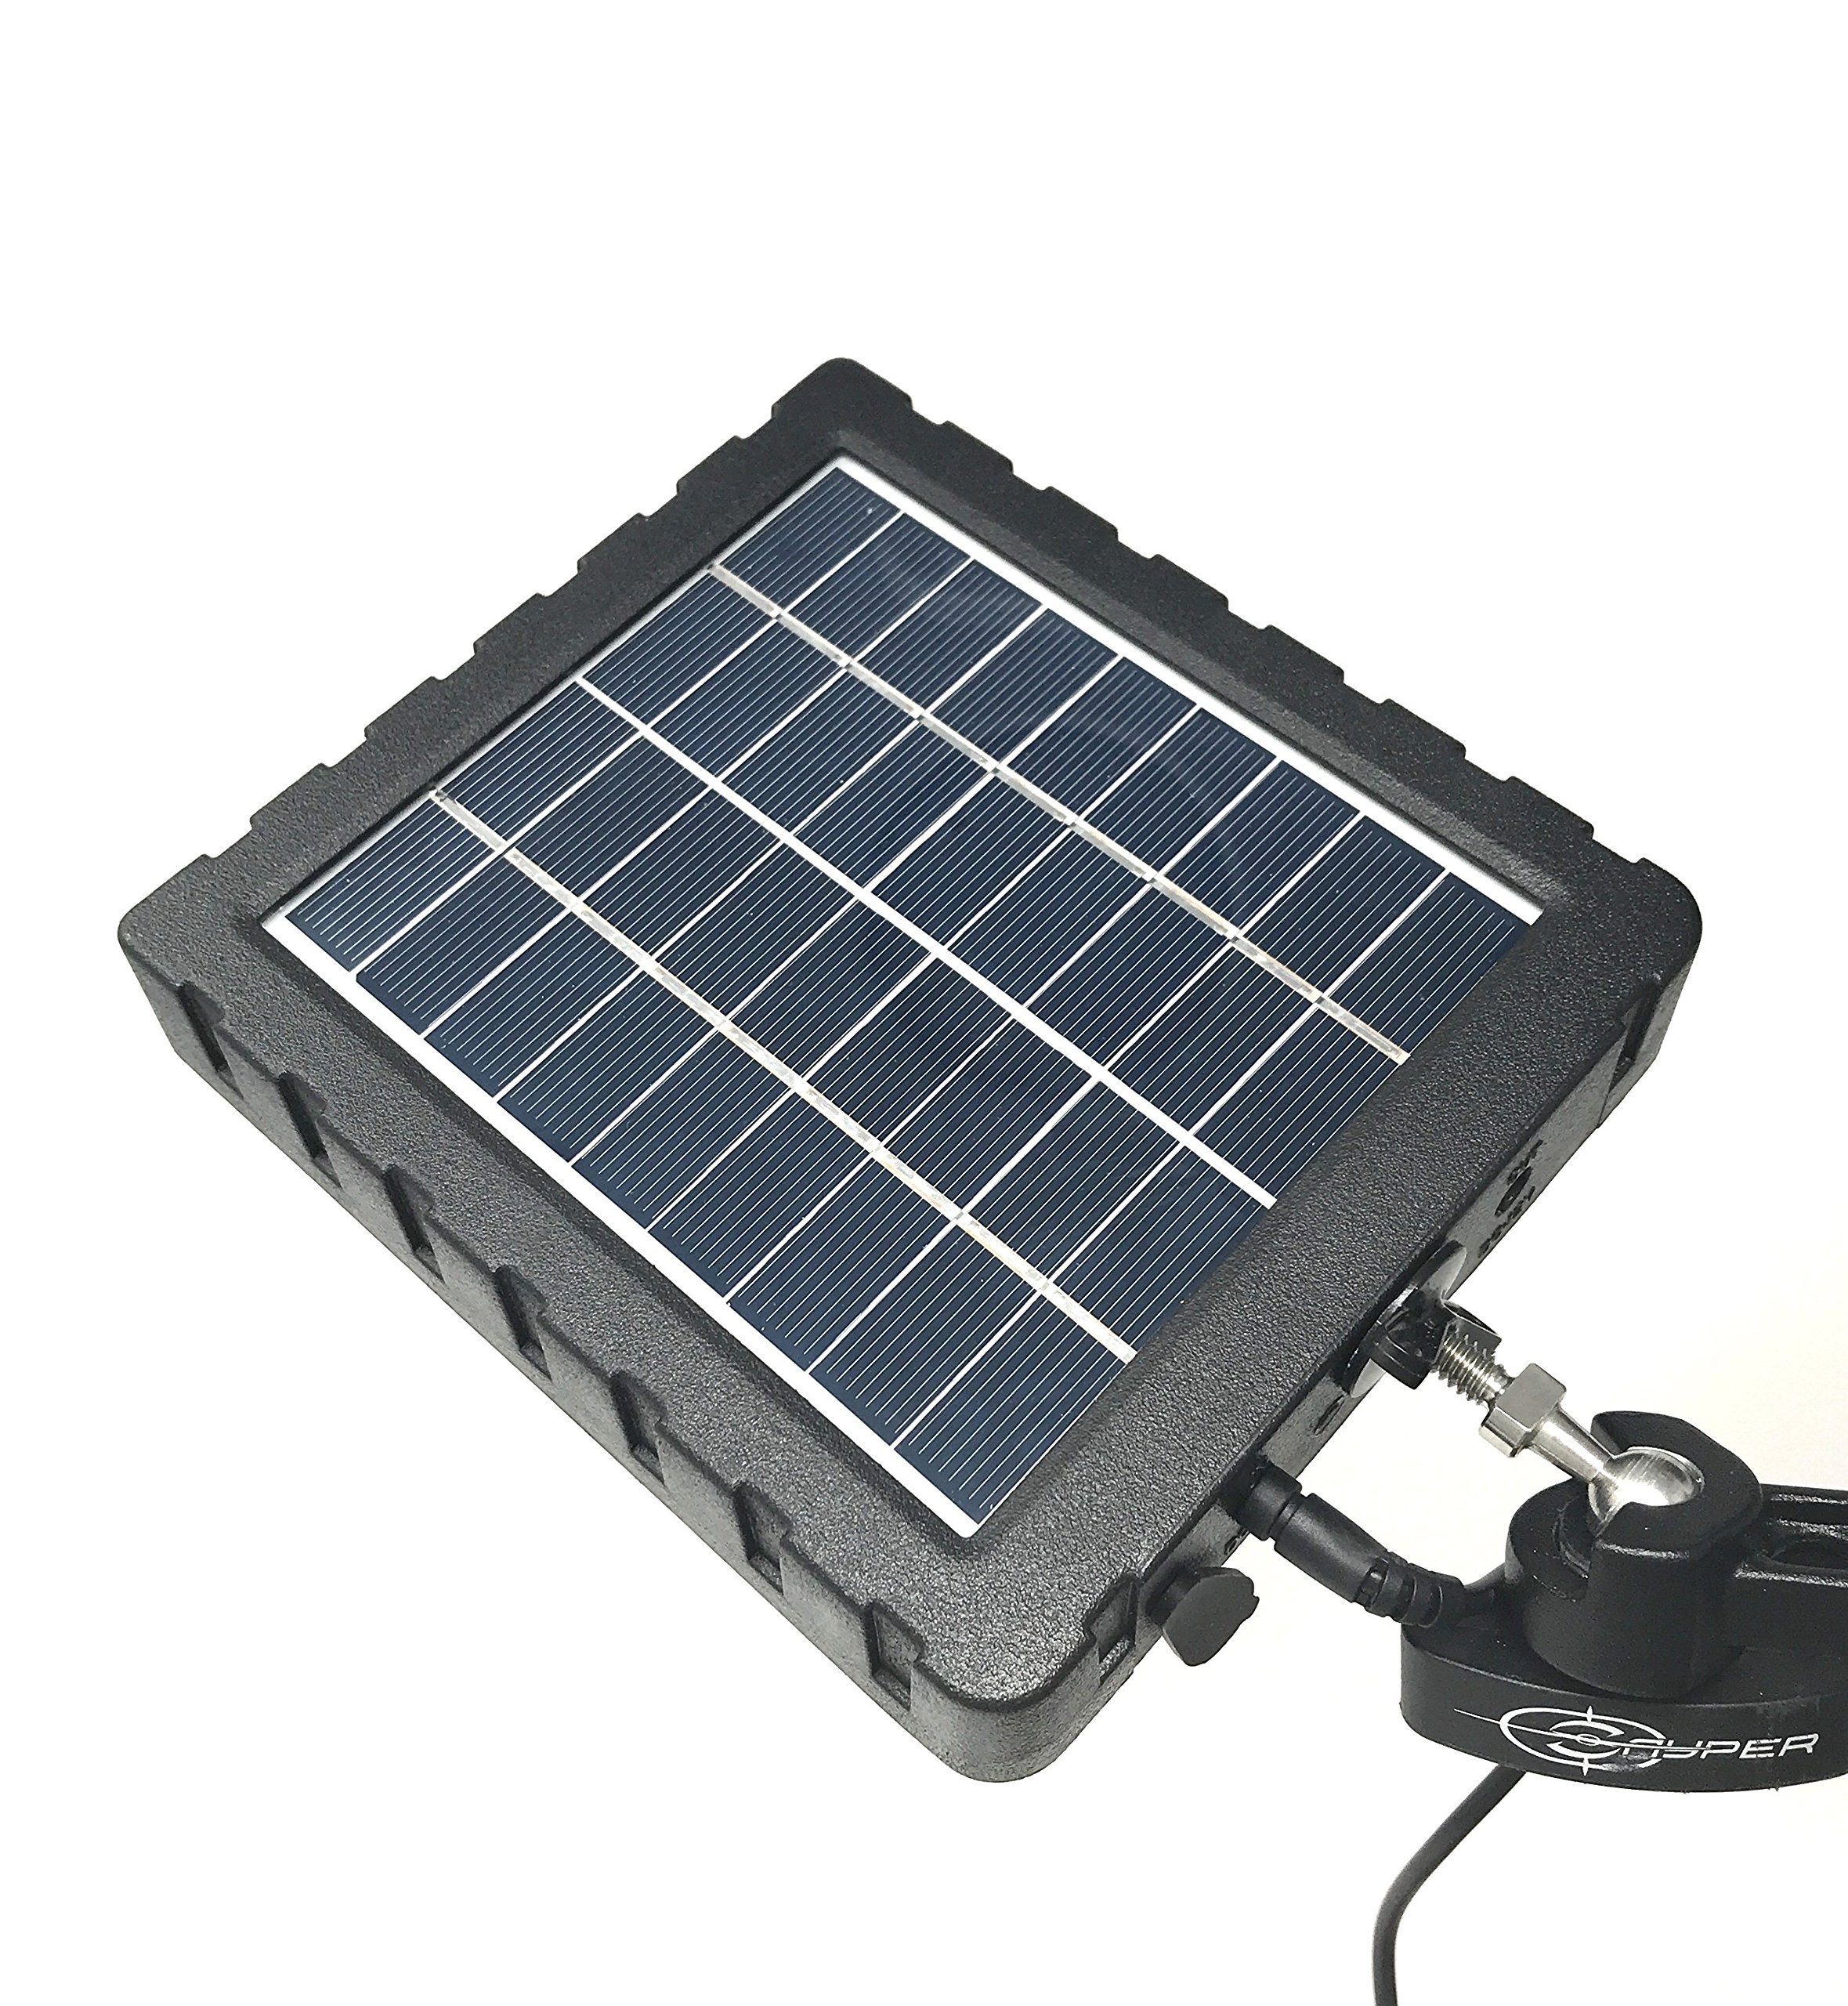 Snyper Hunting Products 12V Solar Panel Kit for Snyper Cameras with 2 Rechargeable Internal Lithium Batteries by Snyper Hunting Products